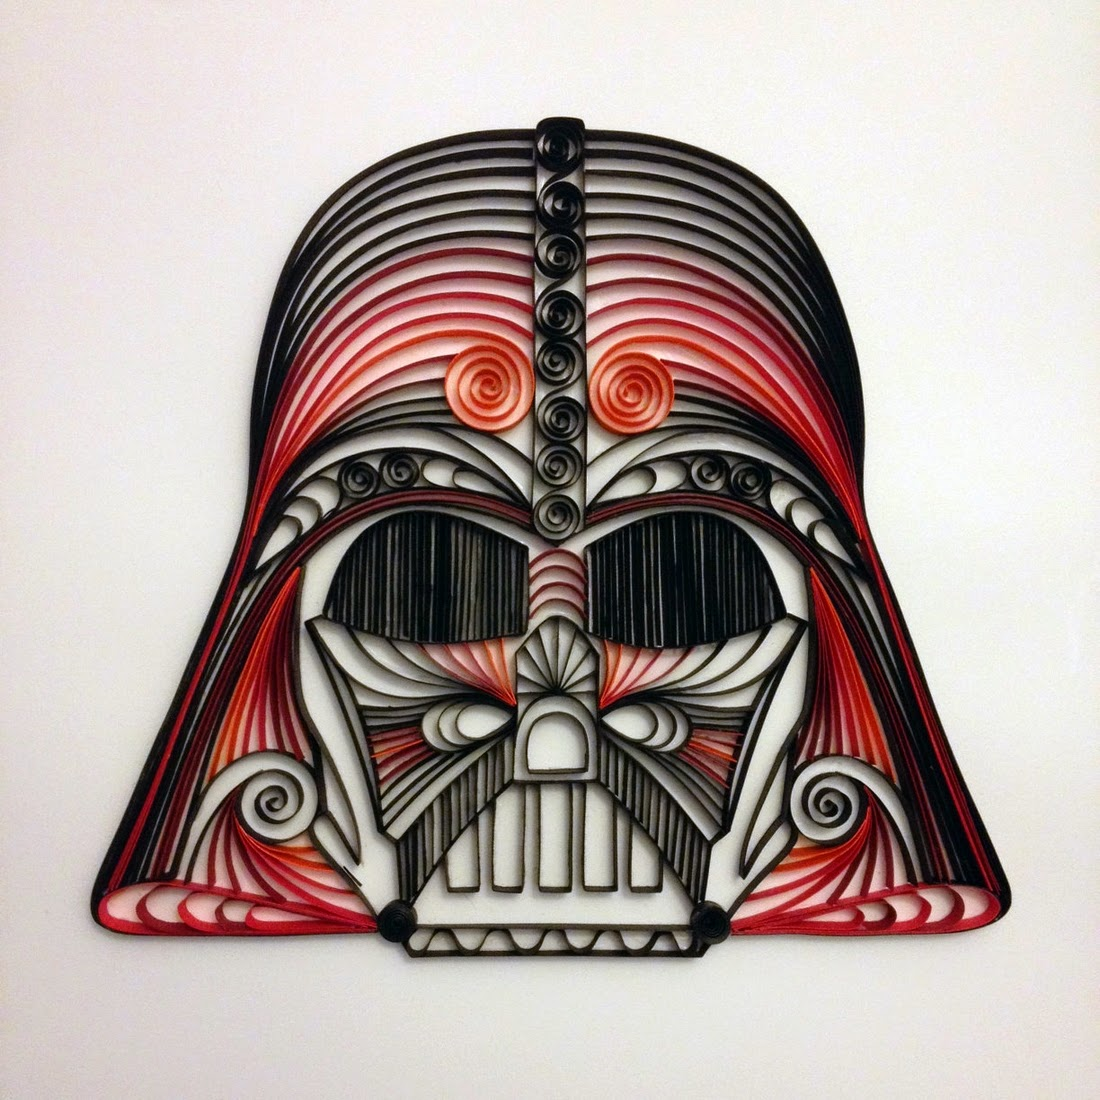 04-Darth-Vader-Helmet-2-Alia-AliaDesign-Sci-Fi-and-Superhero-Paper-Quilling-www-designstack-co